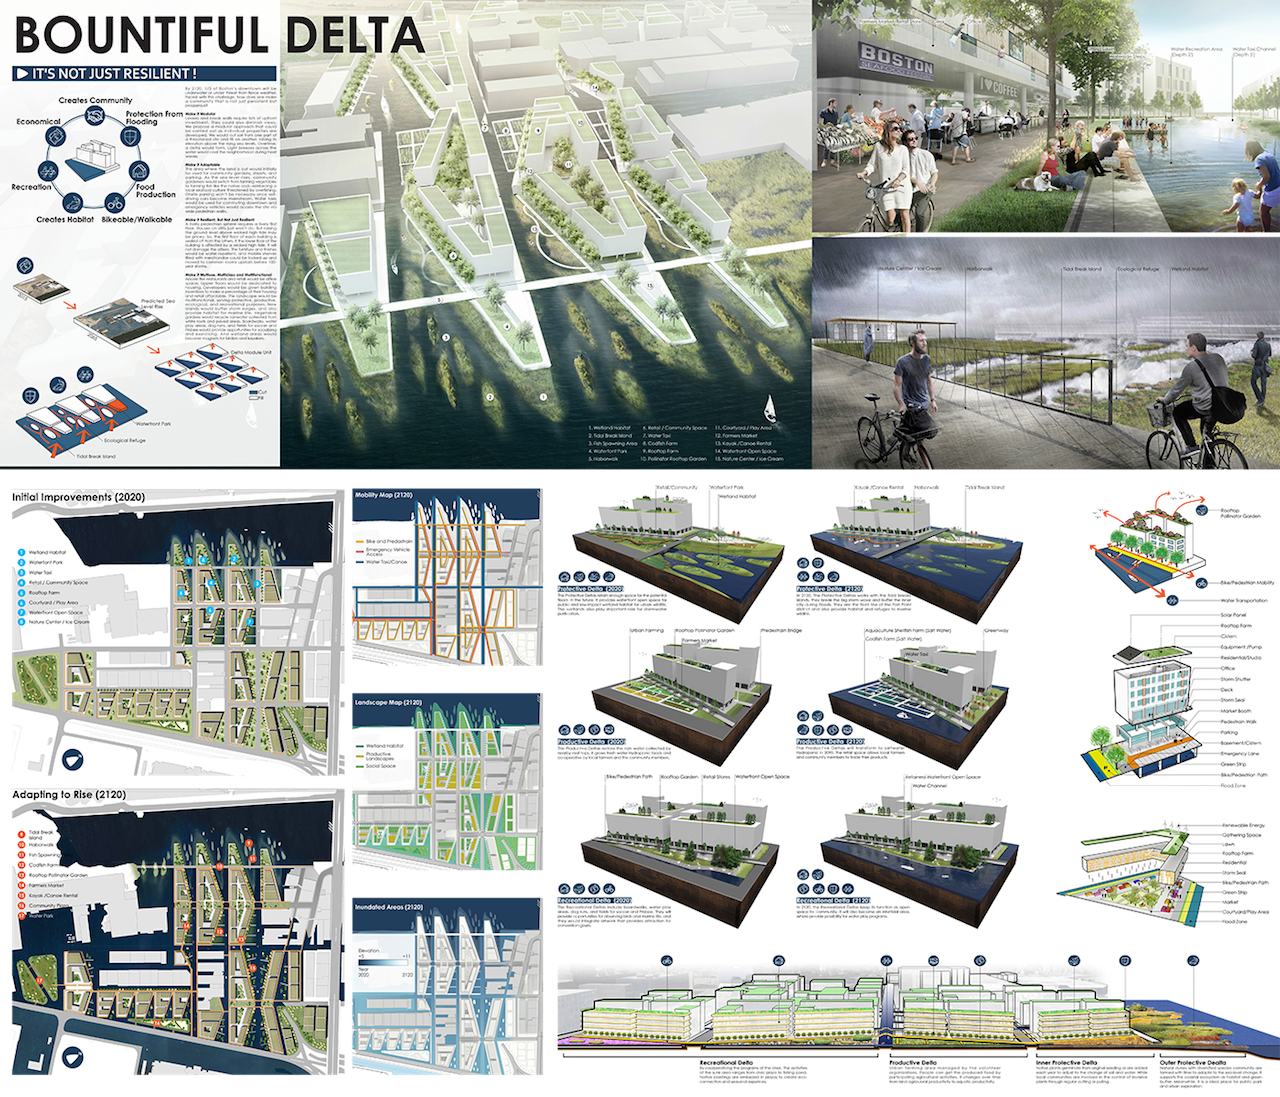 """""""Bountiful Delta"""" led by University of W ashington – Guided by the notion that resilience alone is not good enough, this proposal envisions waterfront neighborhoods that """"are not just persistent but prosperous."""" The strategy calls for modular infrastructure, adaptable land (think of a community garden that could be transformed for fish farming), a lively and water-resilient pedestrian streetscape, and community spaces, restaurants, and retail establishments to provide a genuine neighborhood feel."""